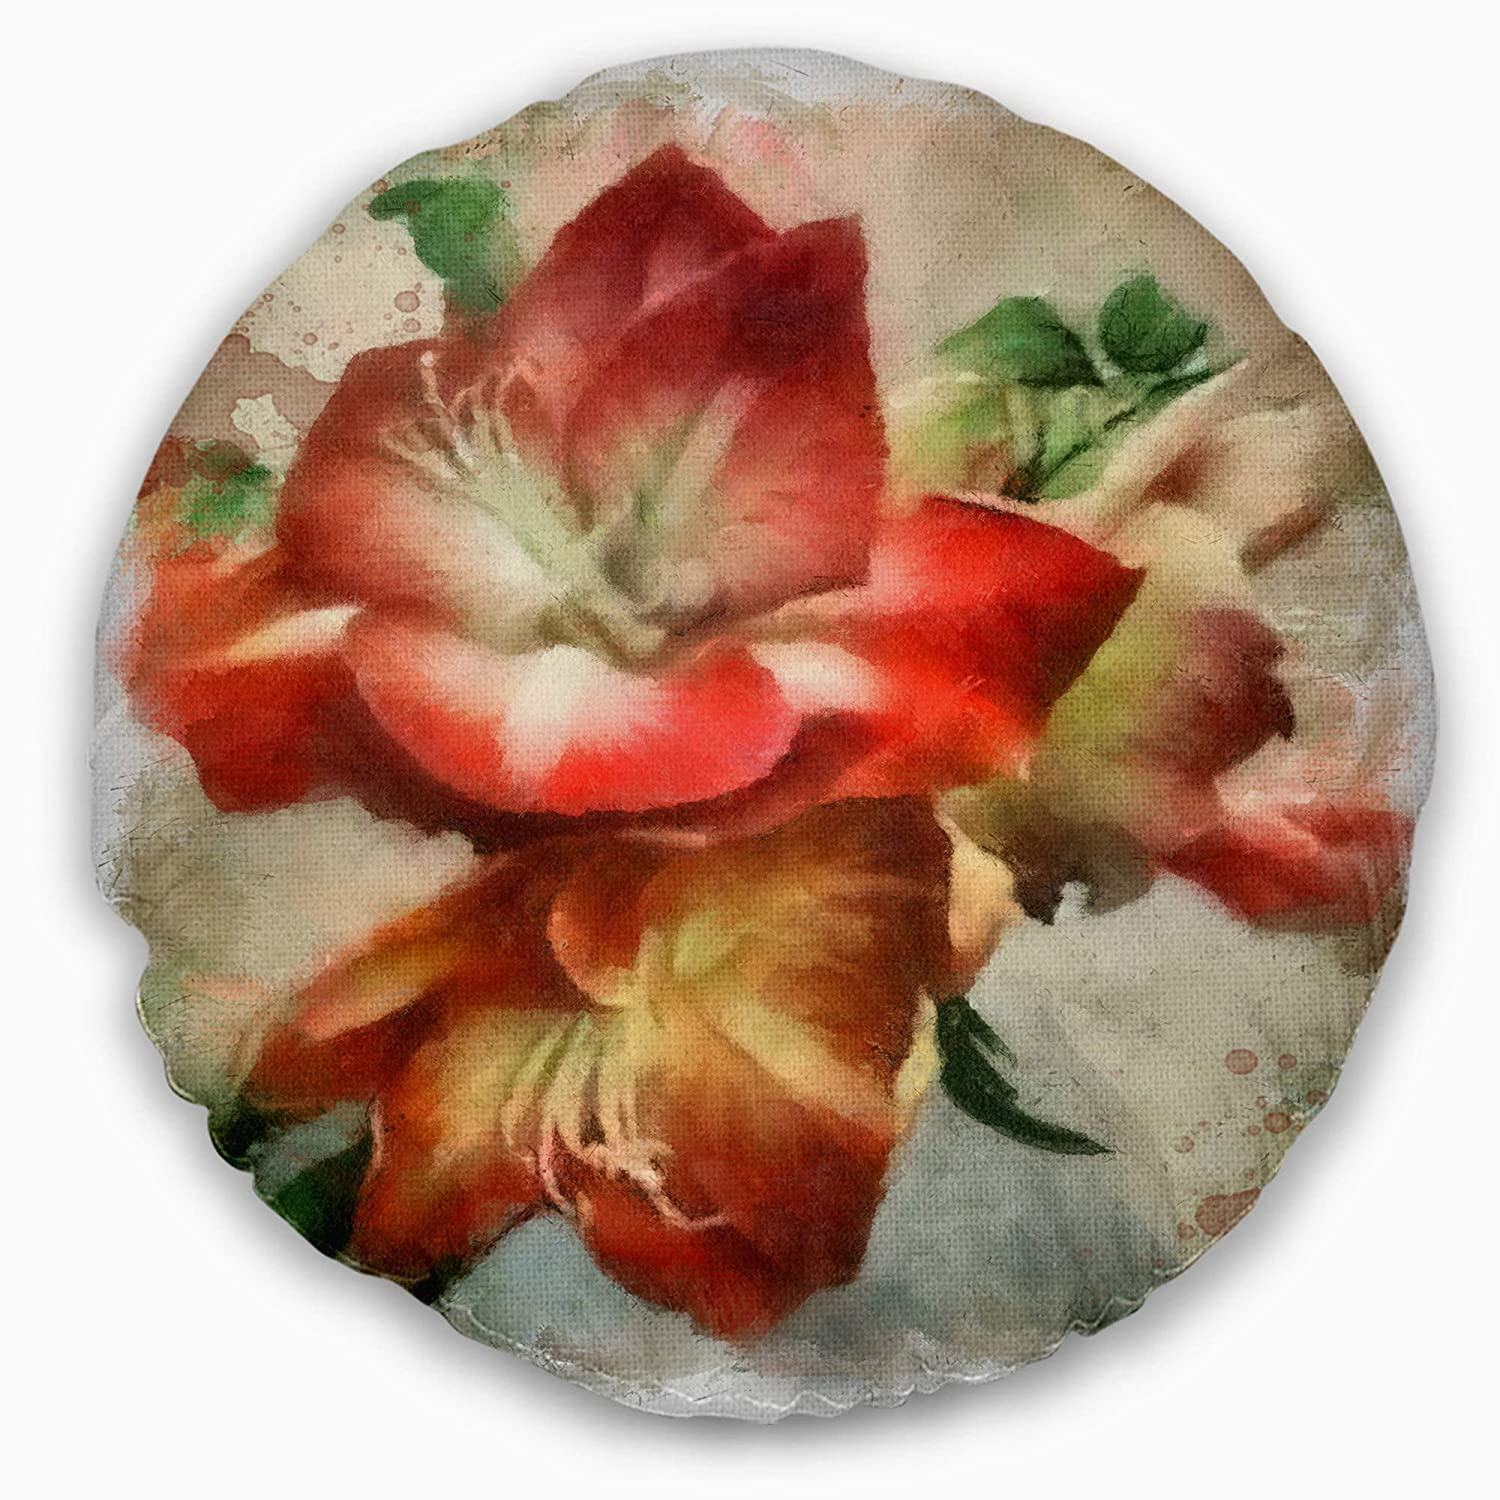 Designart CU13748-16-16-C Bunch of Amaryllis Flowers Drawing Floral Round Cushion Cover for Living Room Sofa Throw Pillow 16